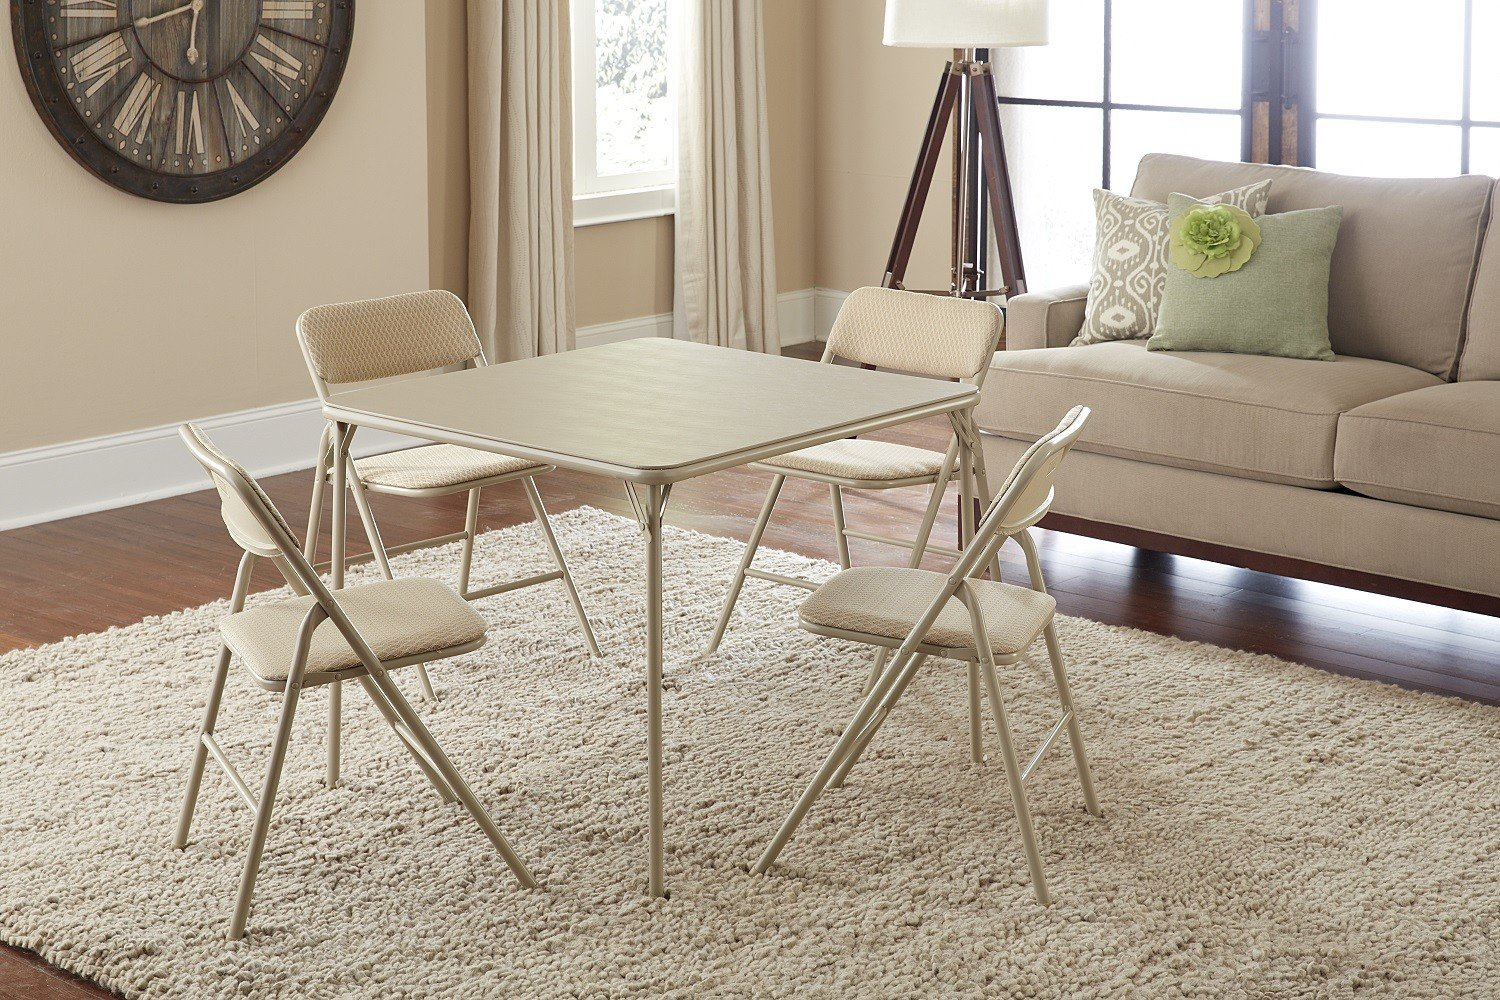 Cosco 5 Piece Folding Table And Chair Set Tan Ebay